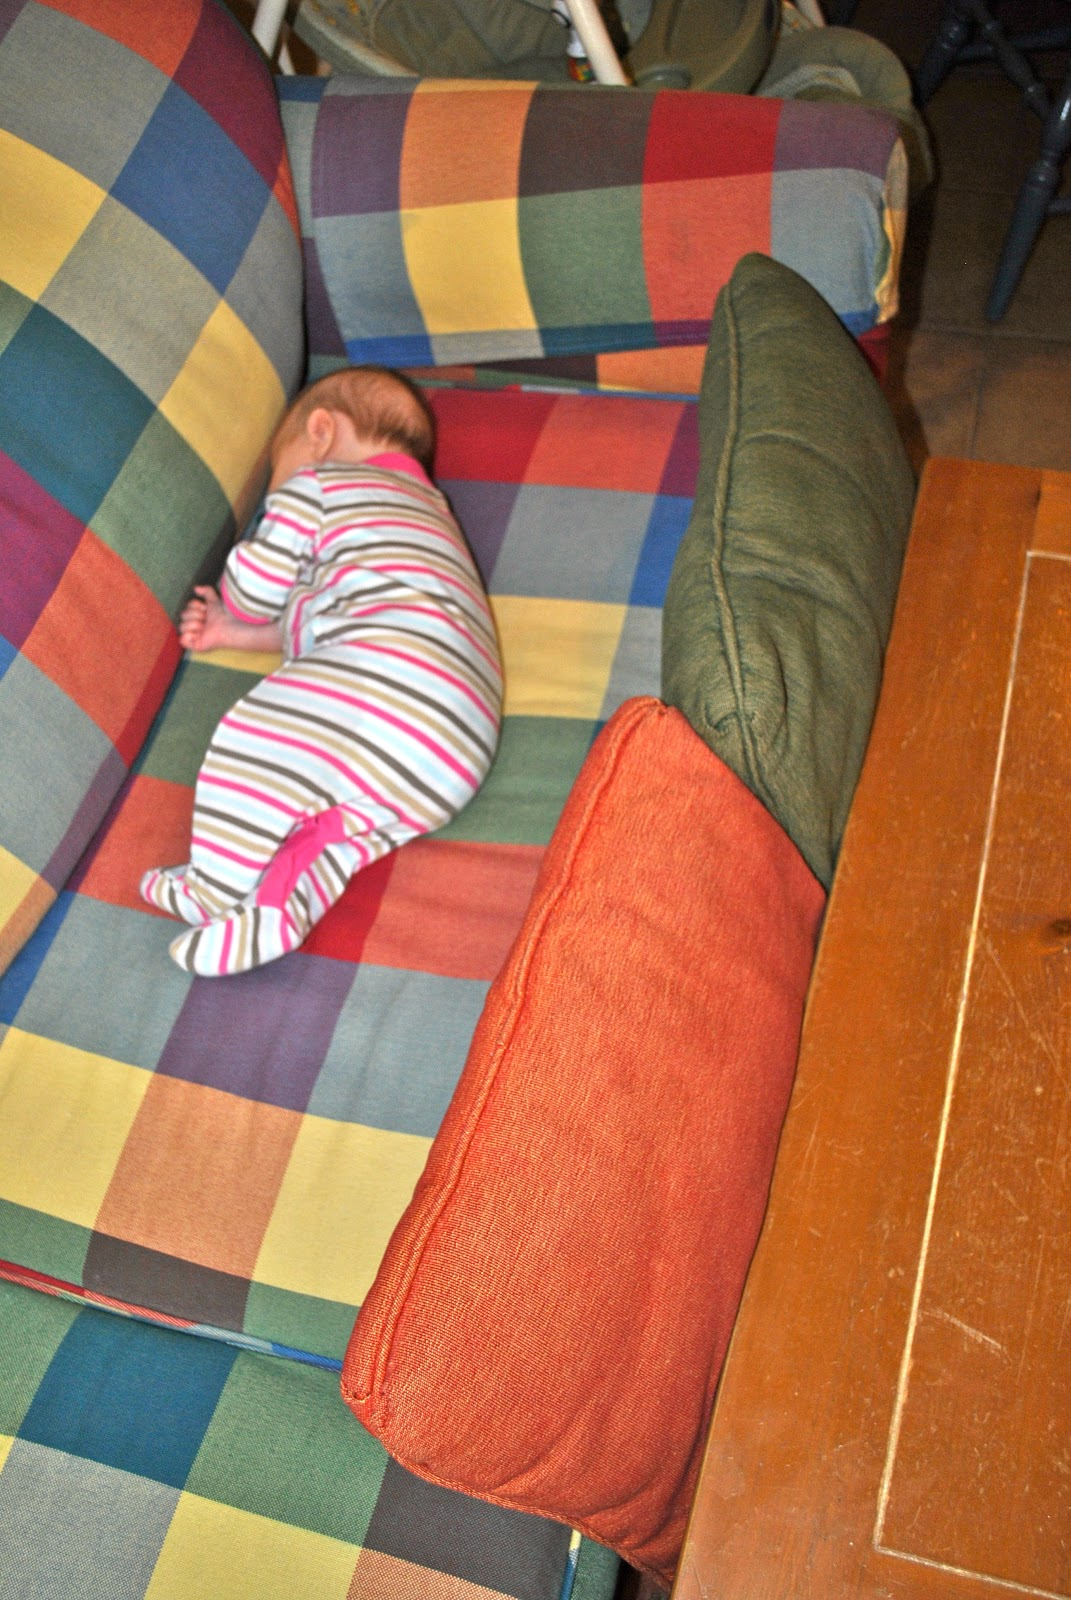 The Juergens Five A Baby Barricade